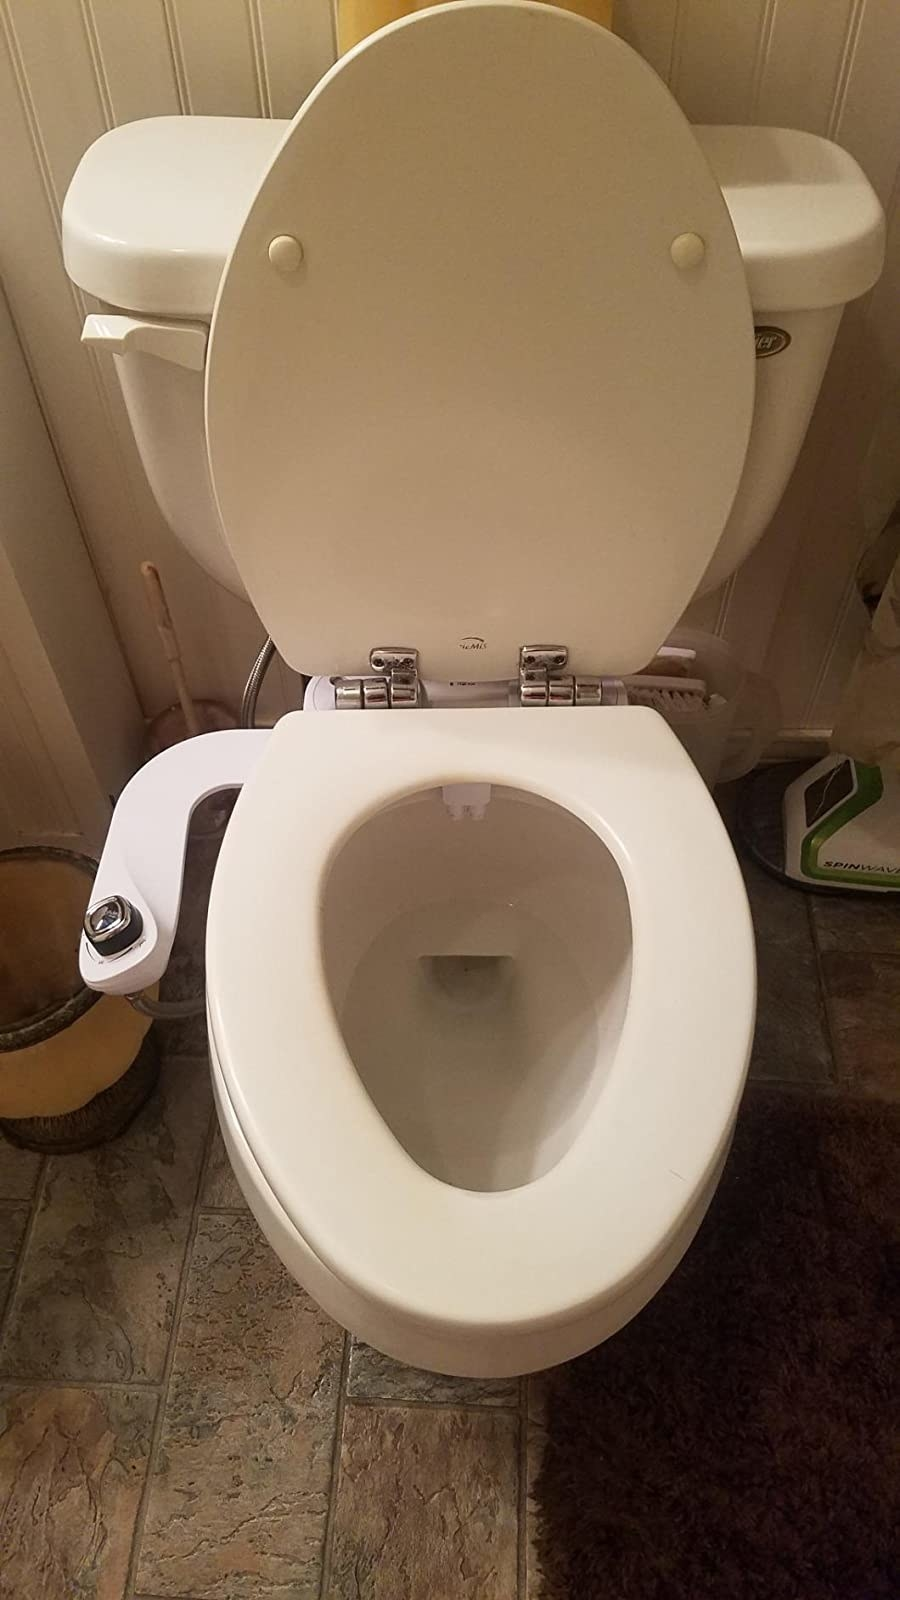 The bidet attached to a toilet